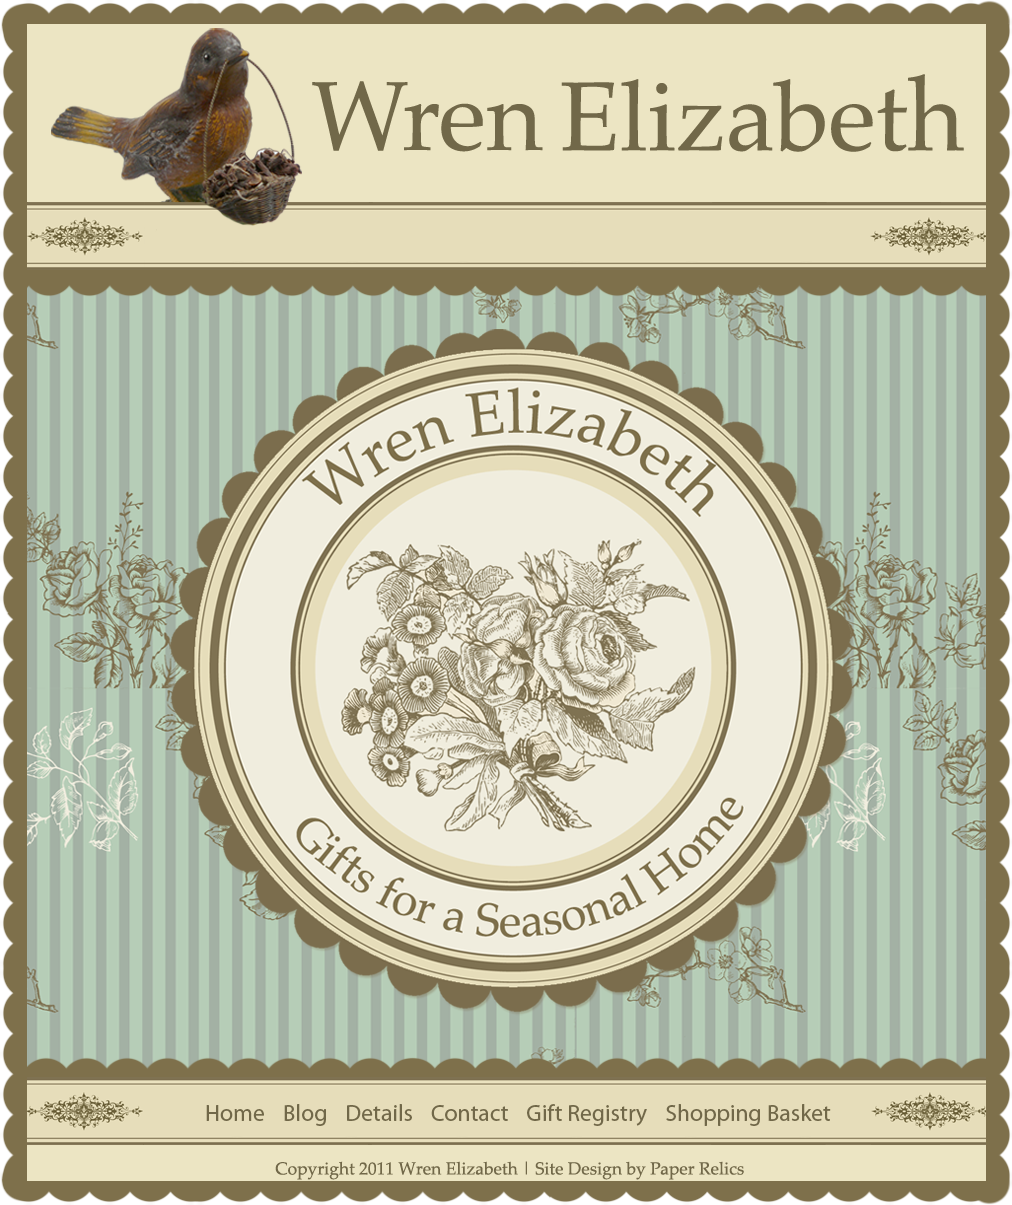 Wren Elizabeth Gifts for a Seasonal Home